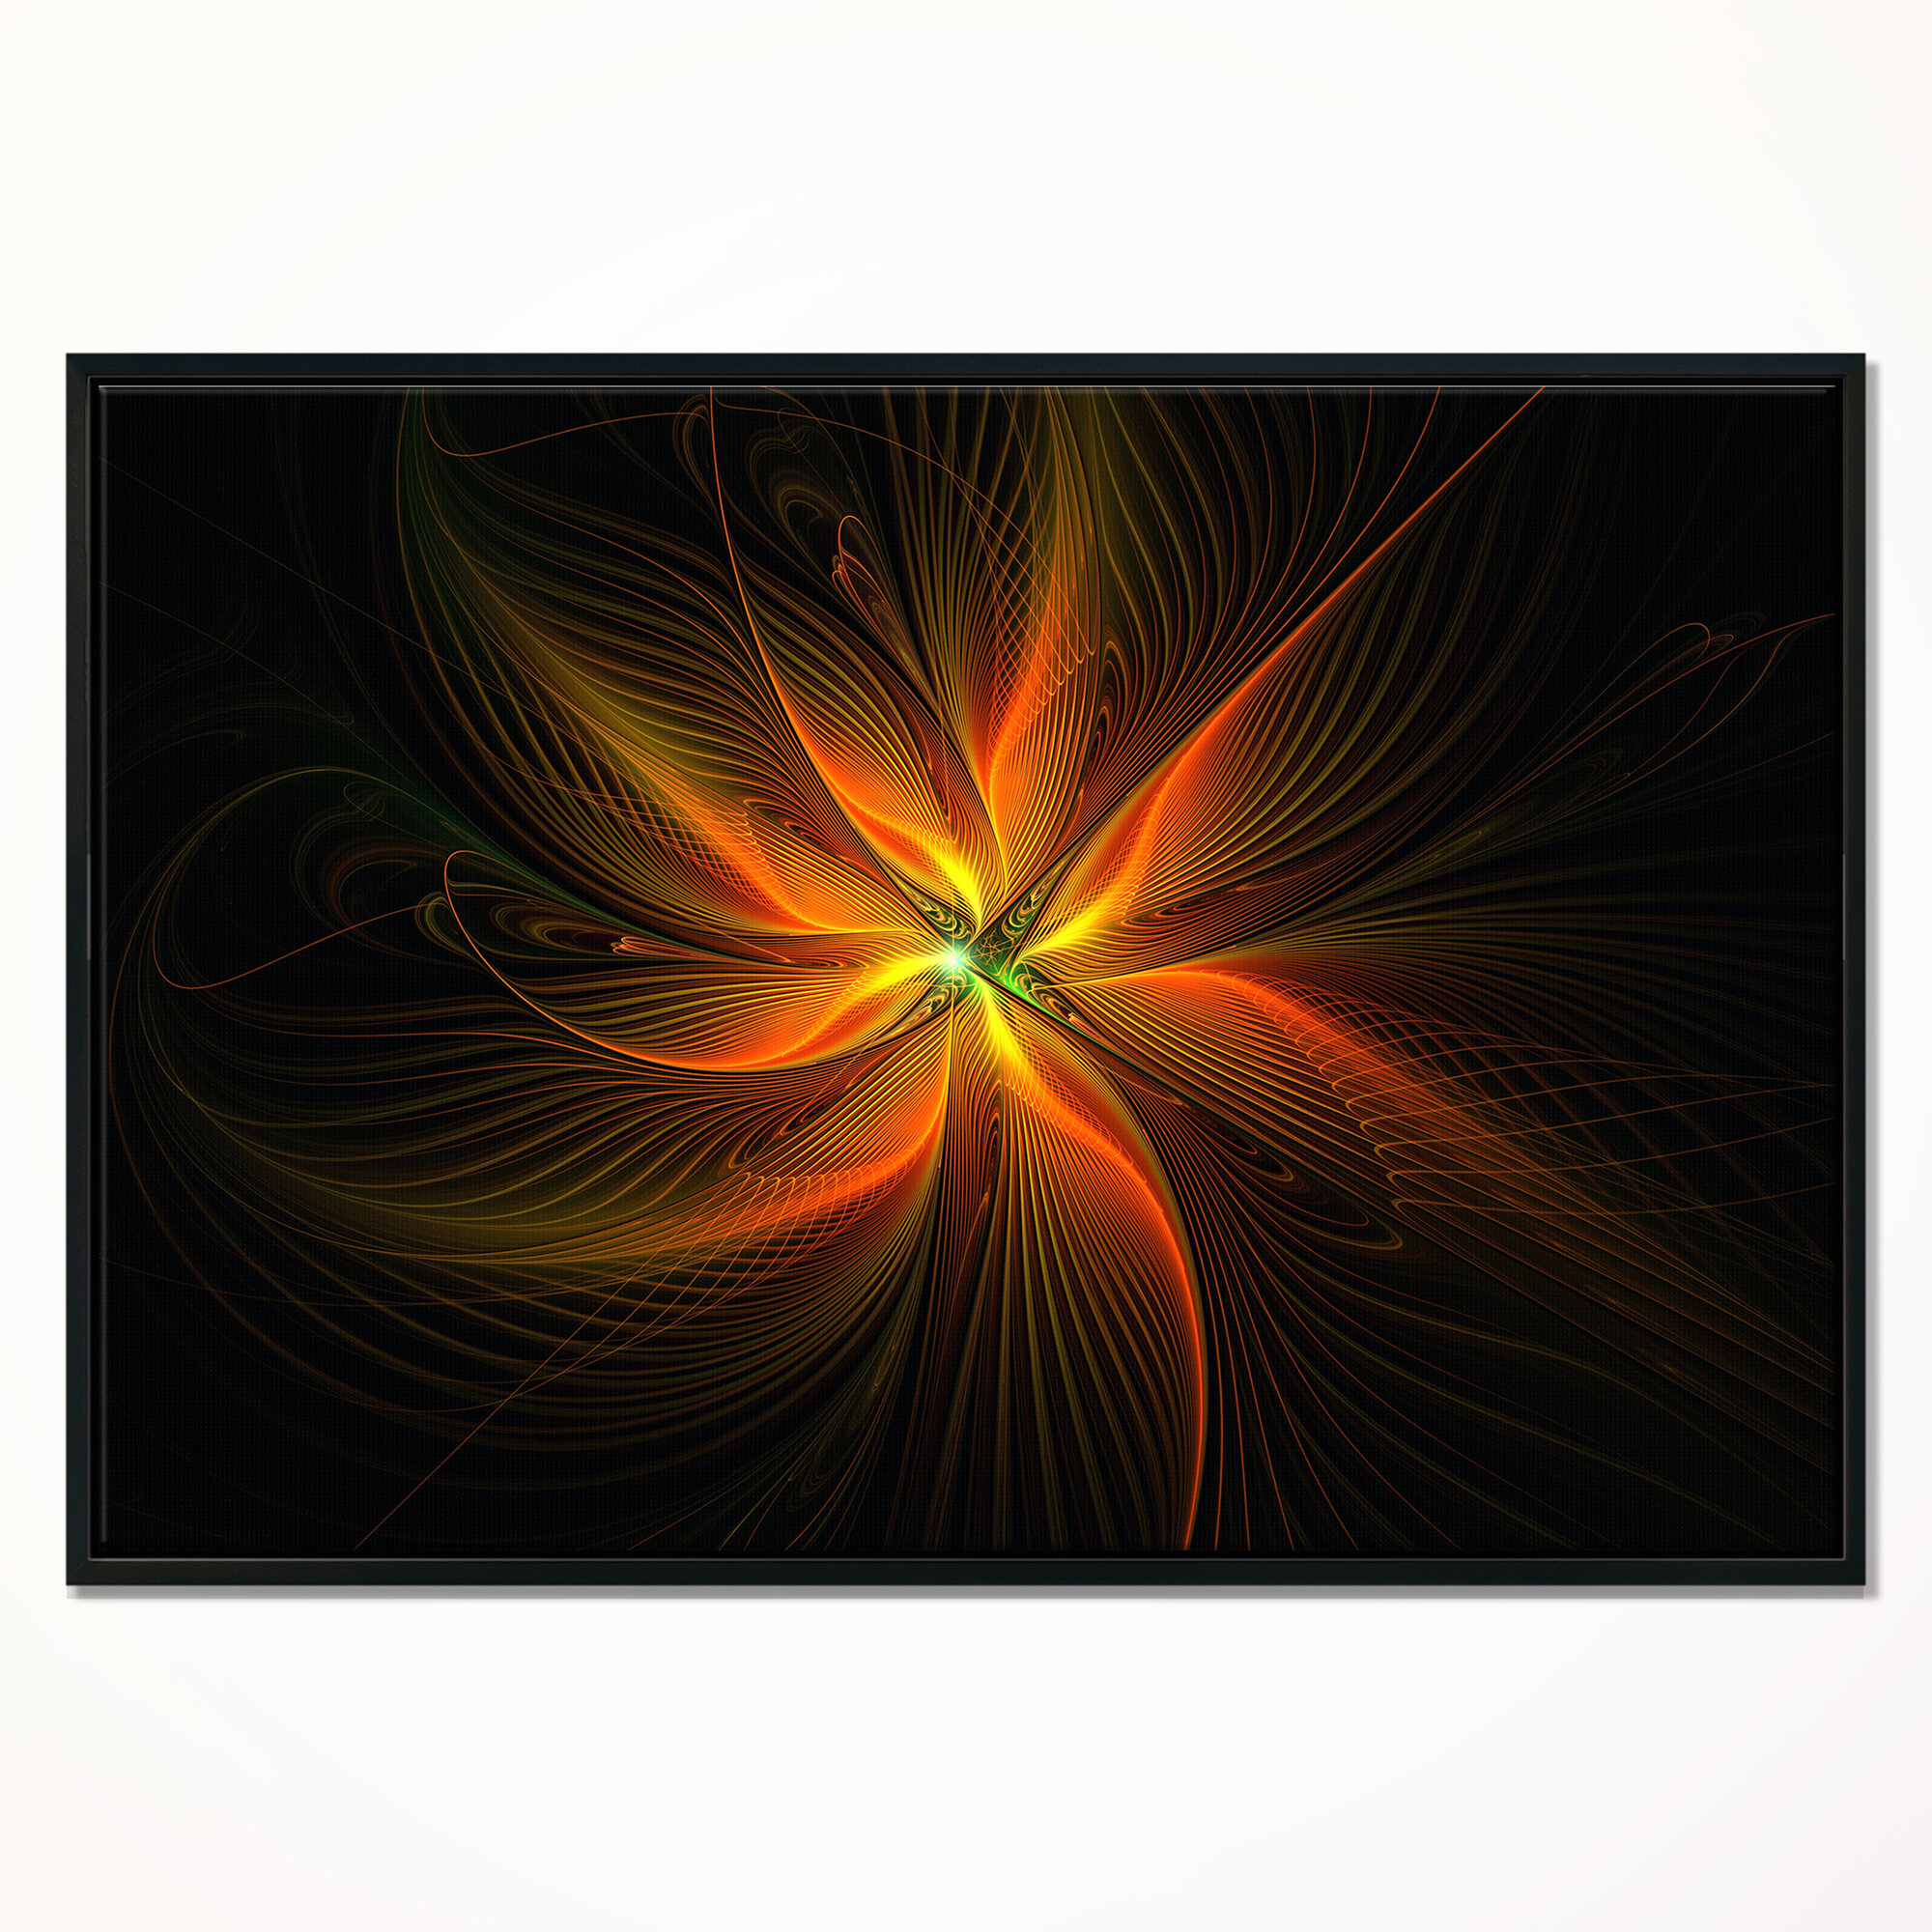 East Urban Home Shiny Golden Yellow Fractal Flower On Black Framed Graphic Art Print On Wrapped Canvas